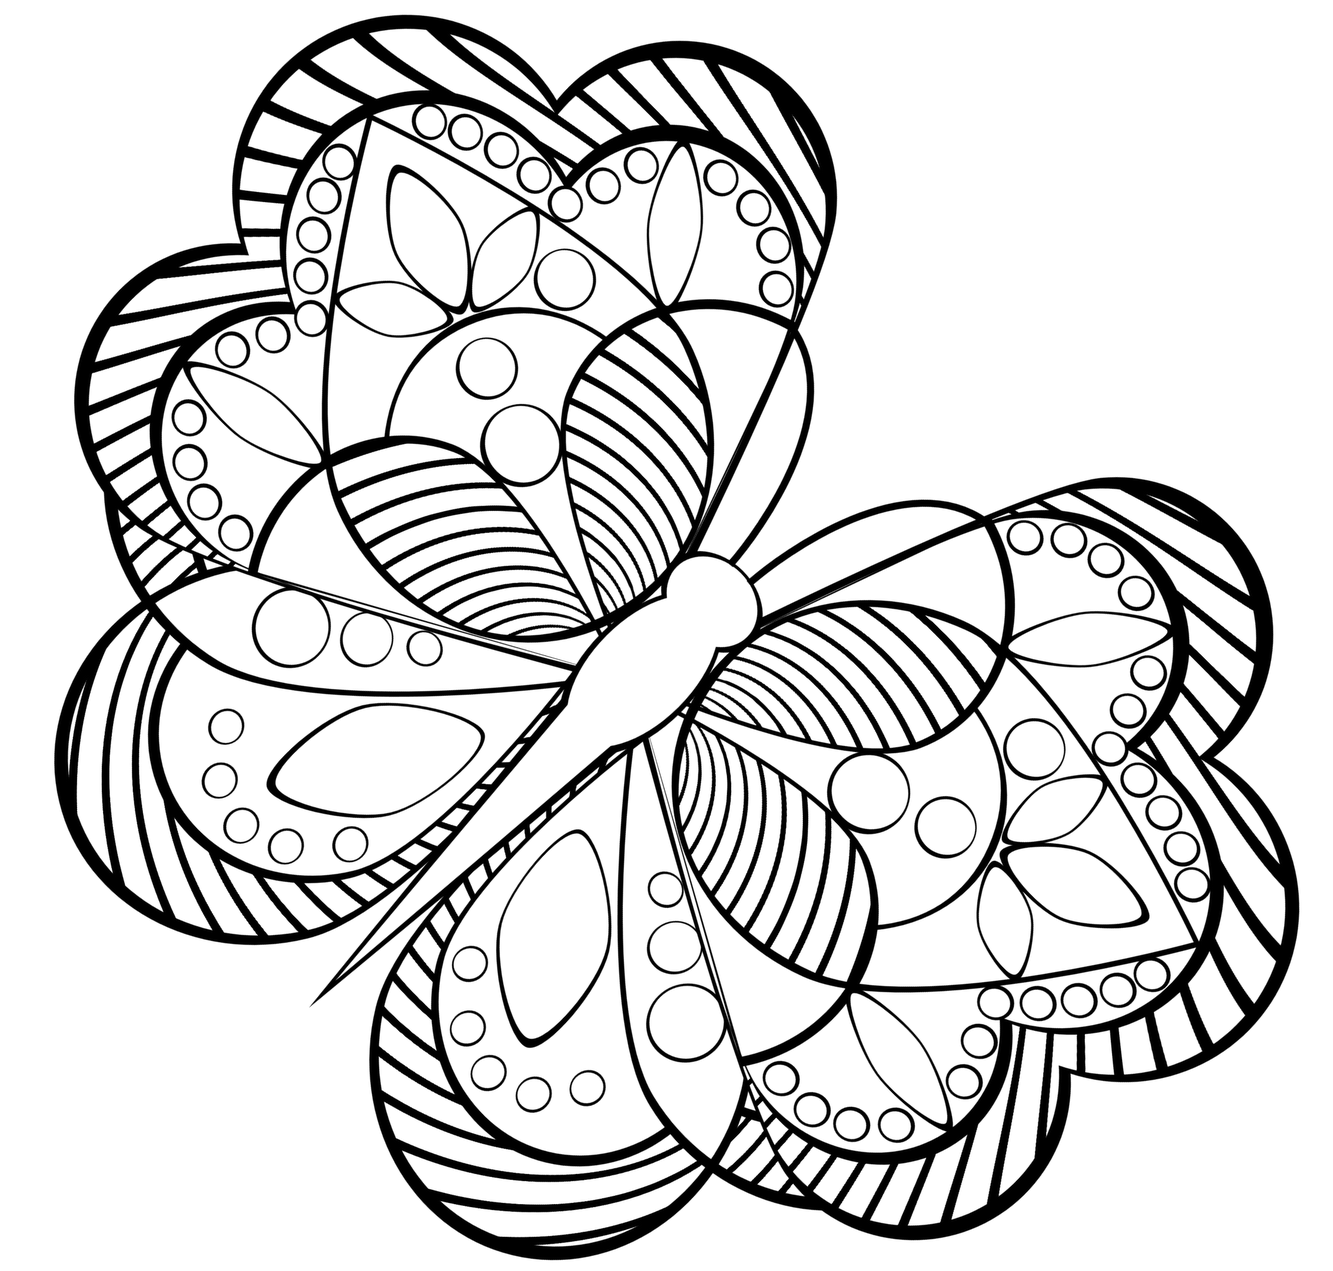 art pictures to color doodle art to print doodle art kids coloring pages color to pictures art